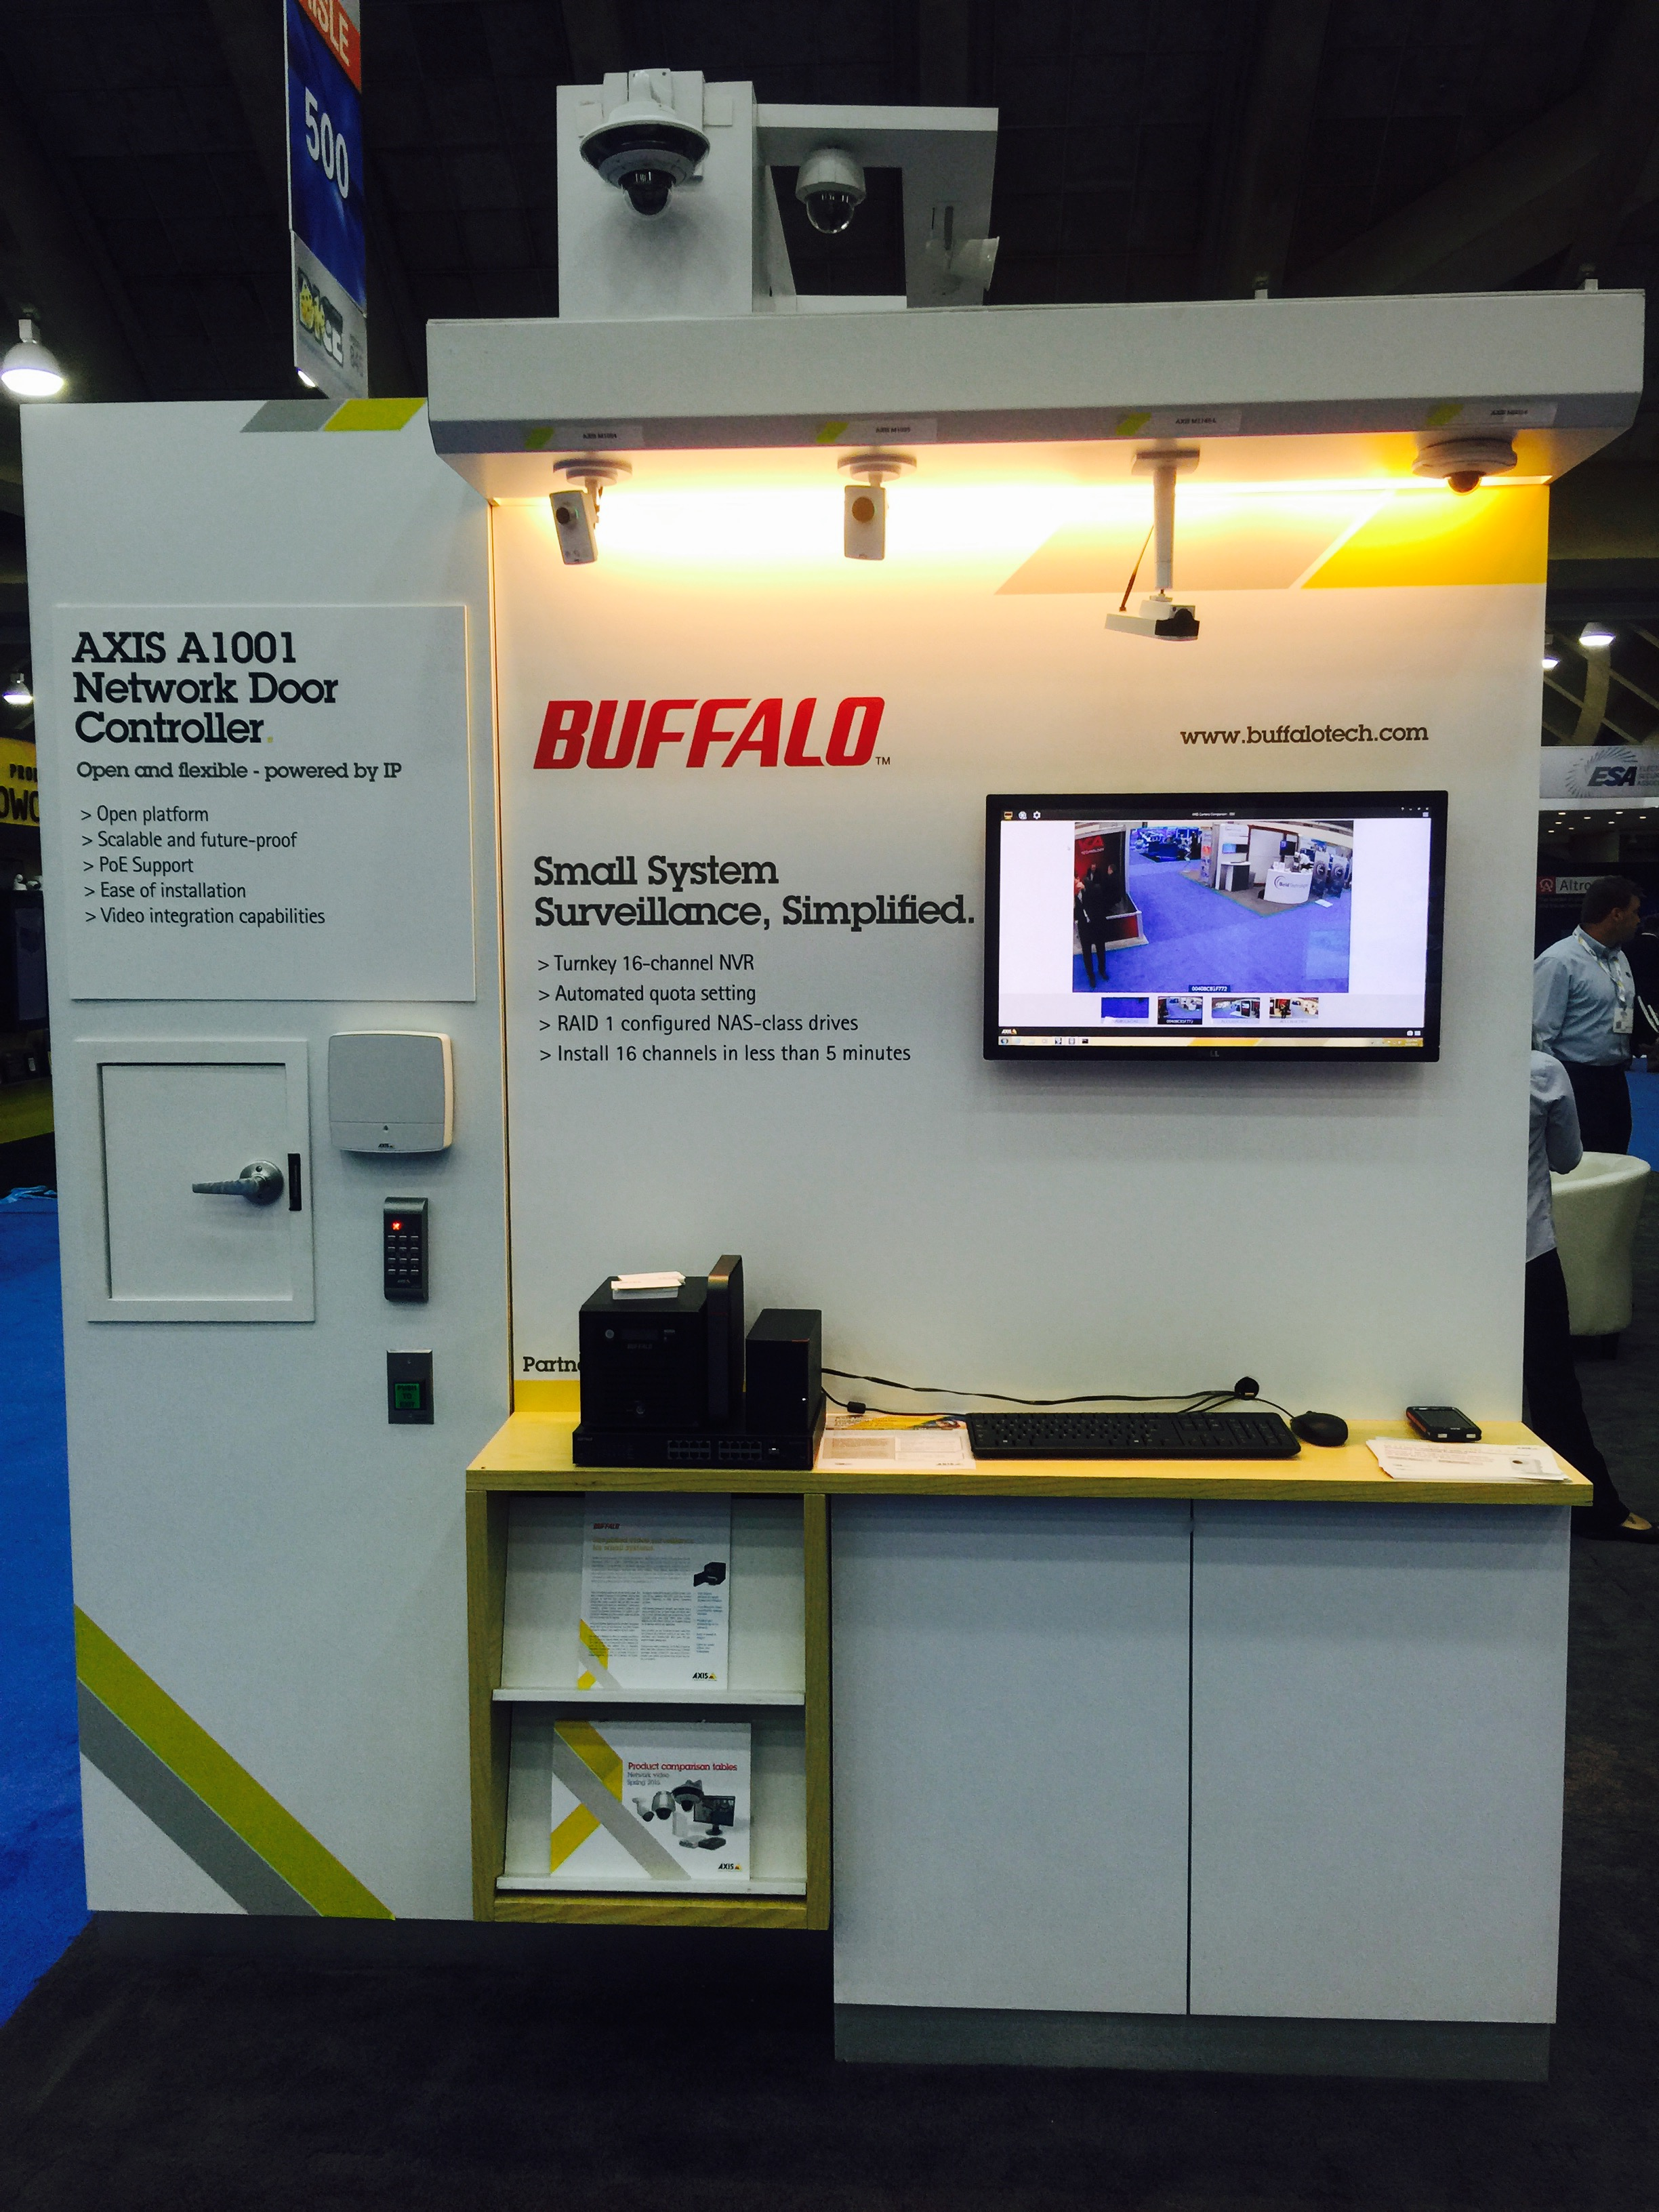 Esx 2015 Roundup And Recap Buffalo Americas Basic Structured Wiring Installation Adjacent To Security Panel According Systems News The Premiere Media Sponsor Of Electronic Expo Home Automation Internet Things Iot